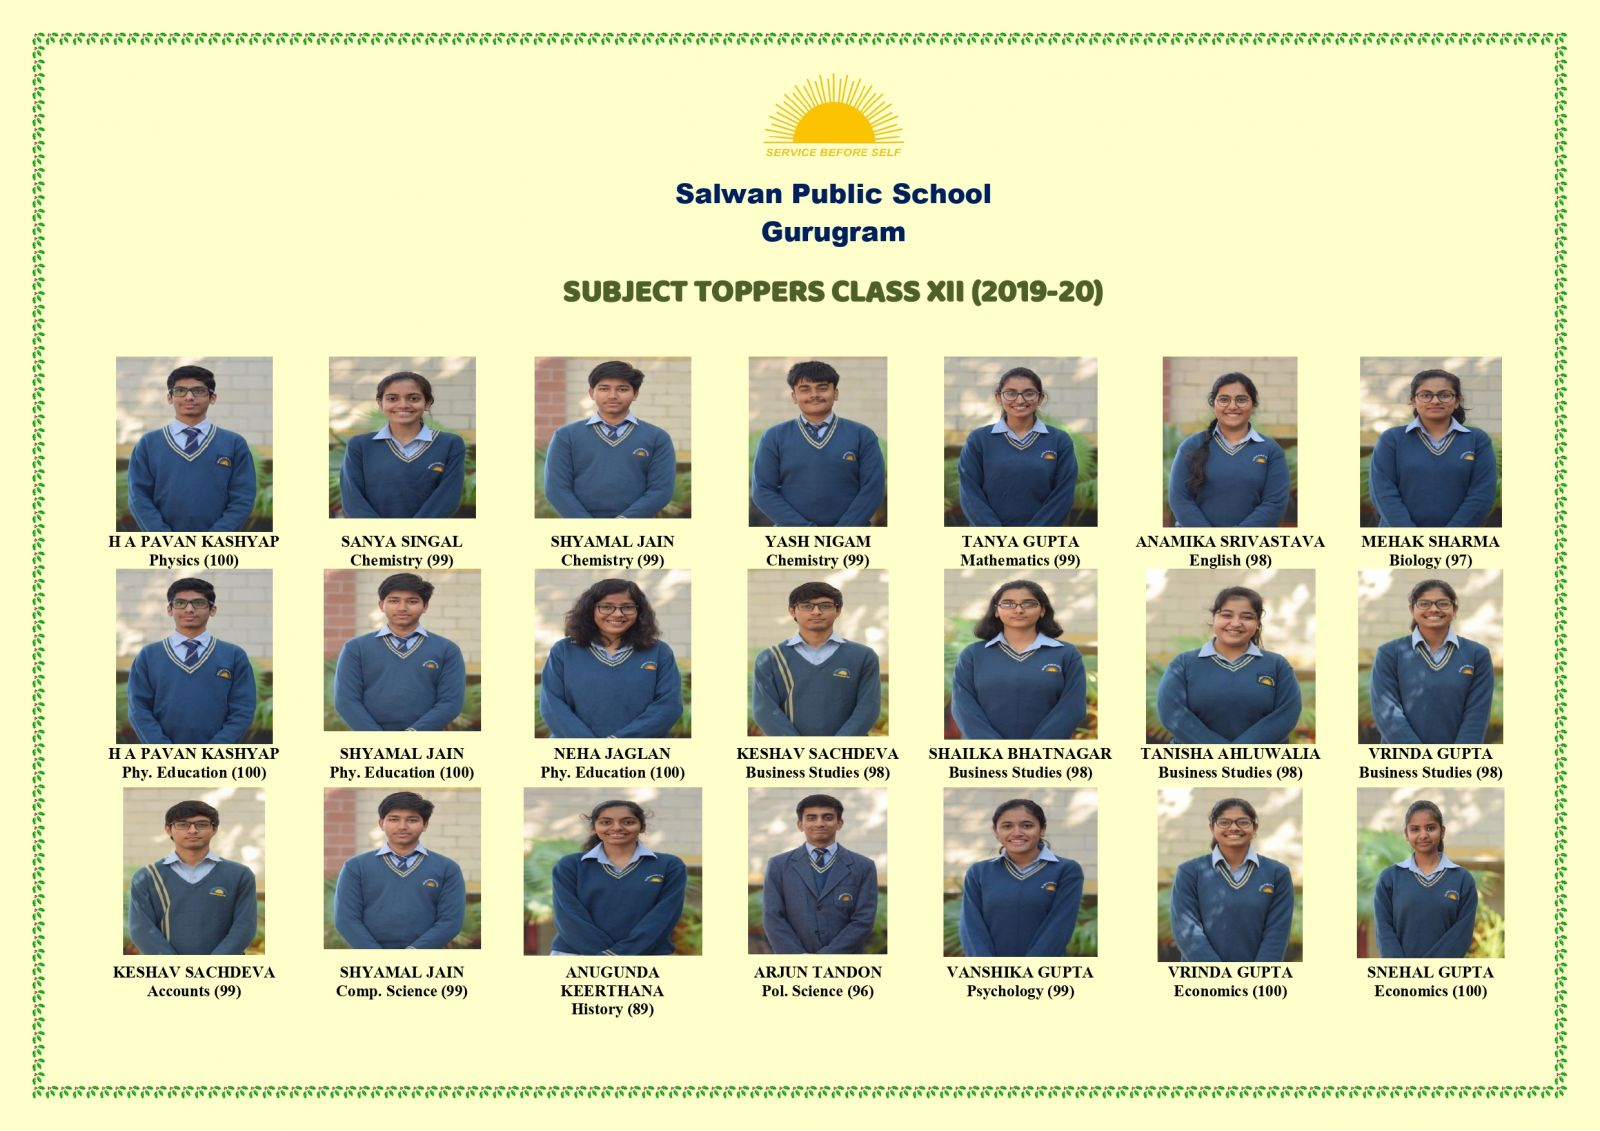 Subject Topper Class XII